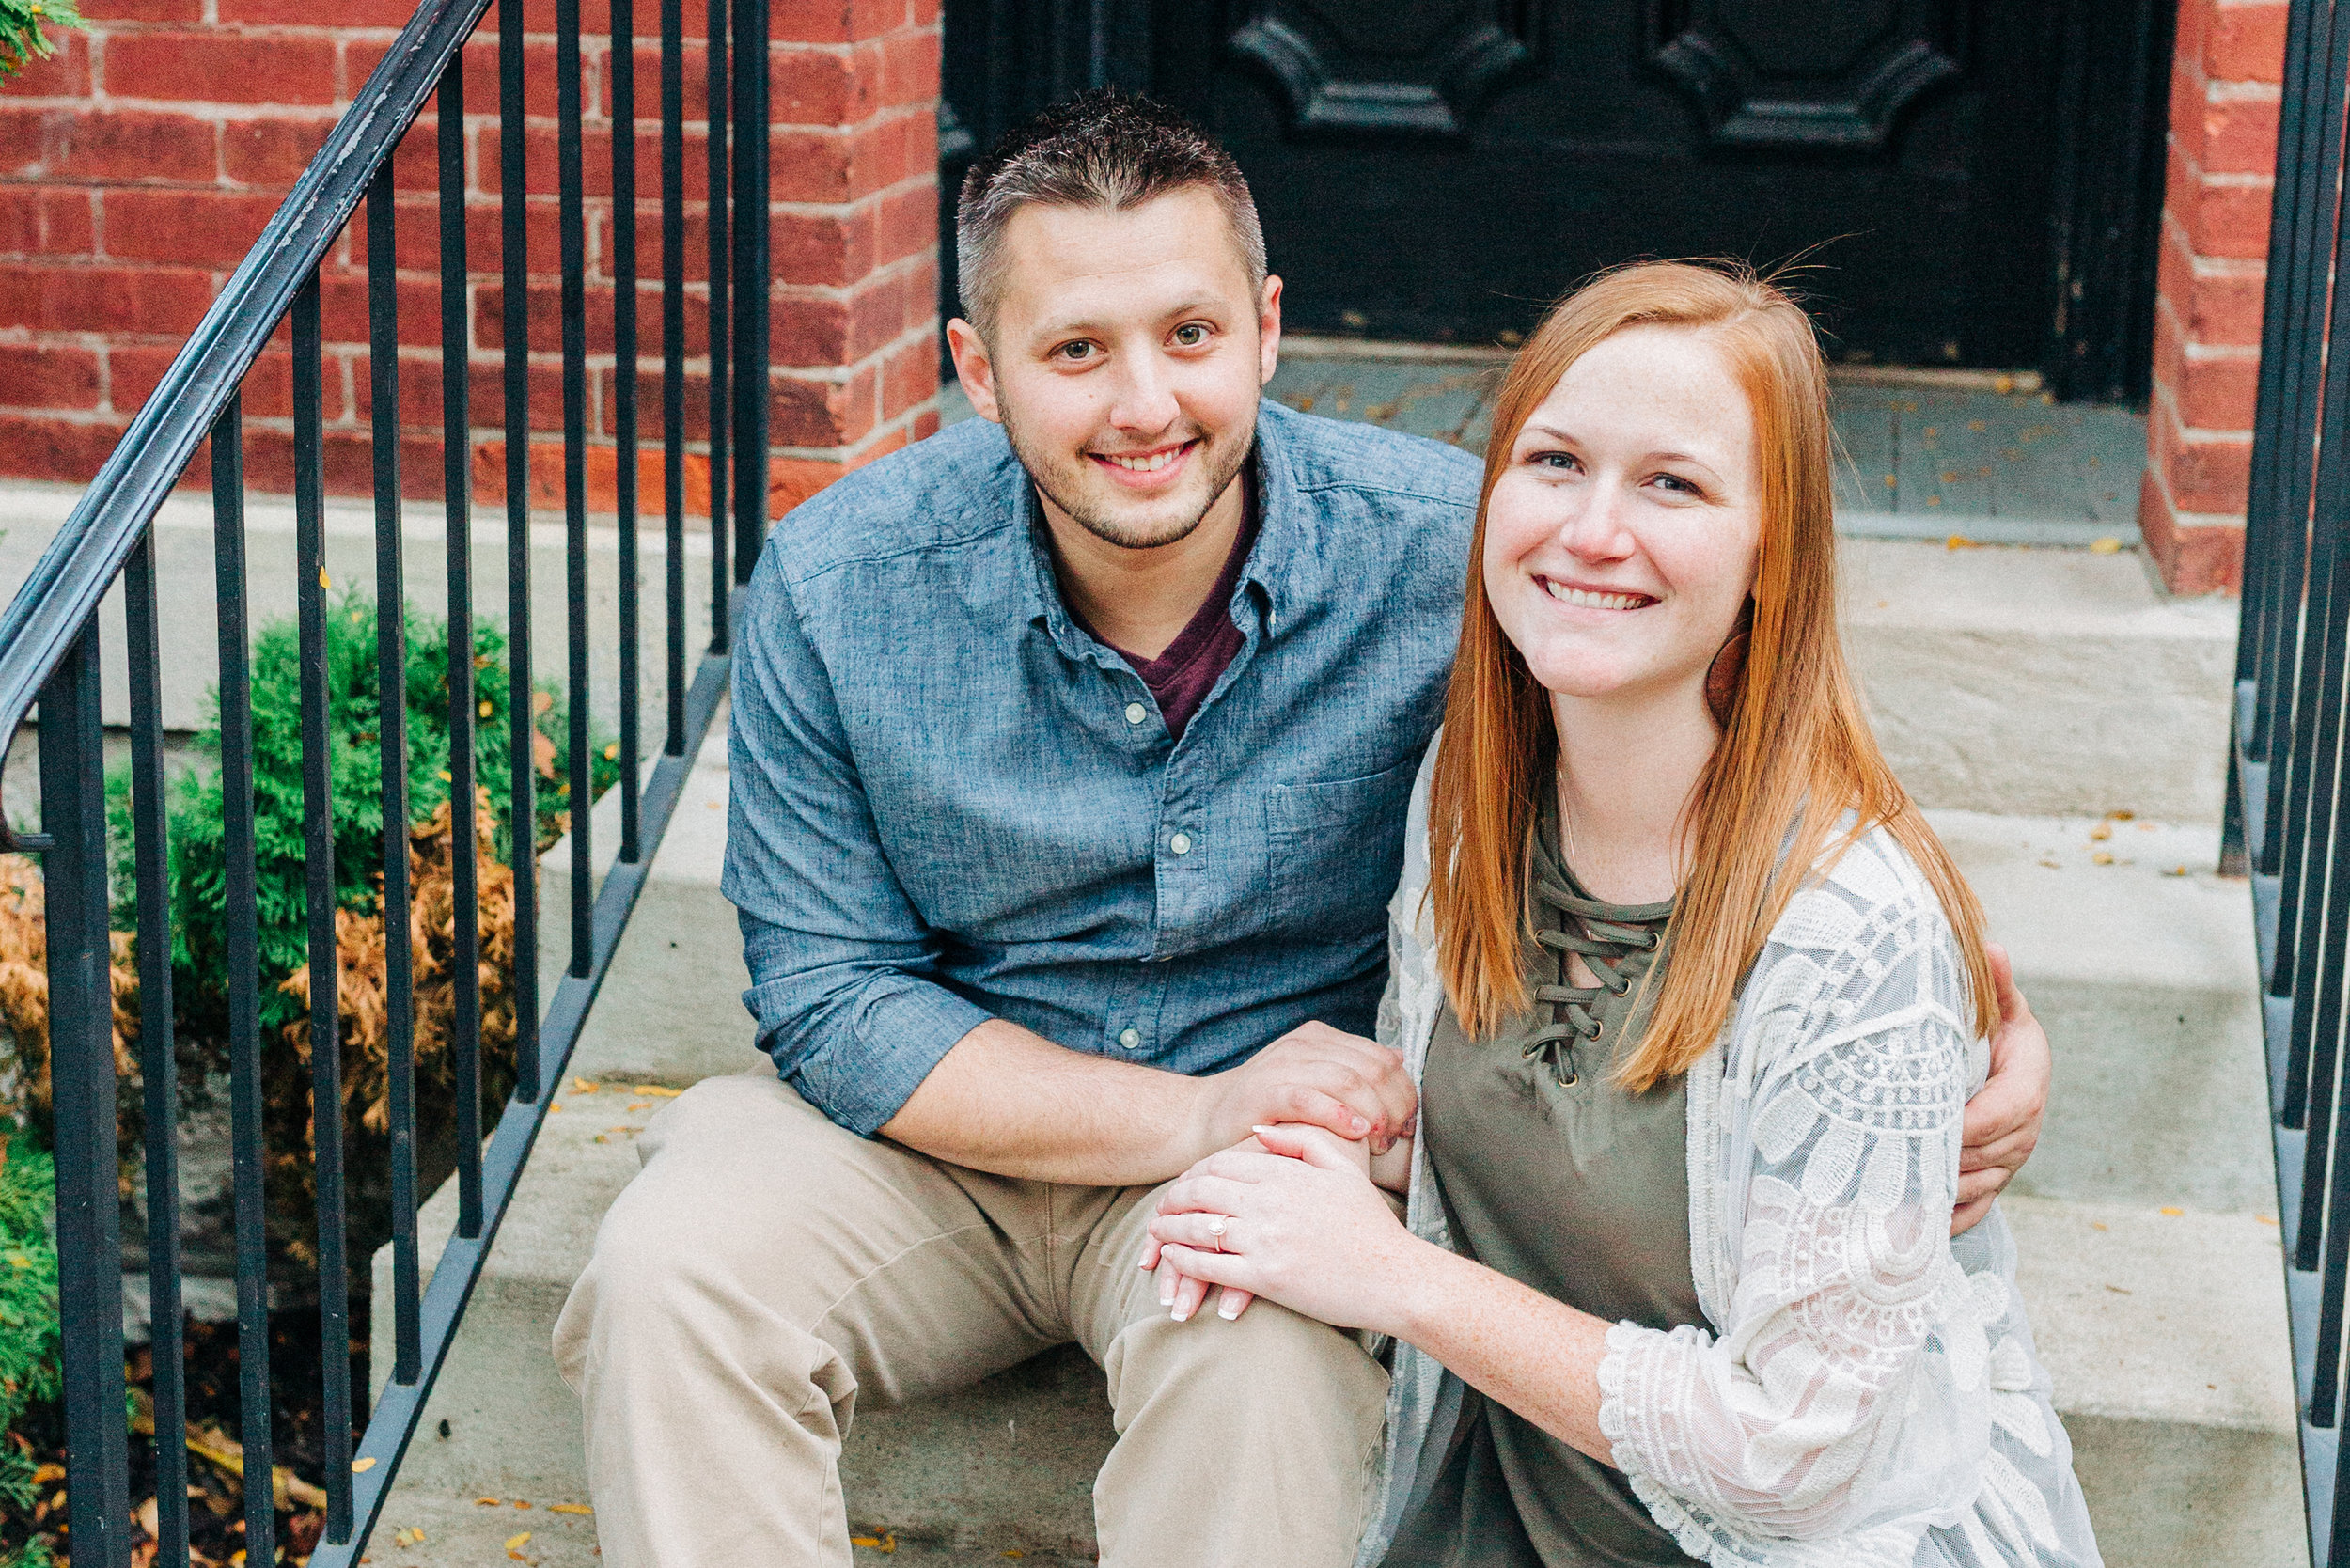 Dorothy_Louise_Photography_Sam_Nick_Main_Street_Saint_Charles_Engagement-4626.jpg